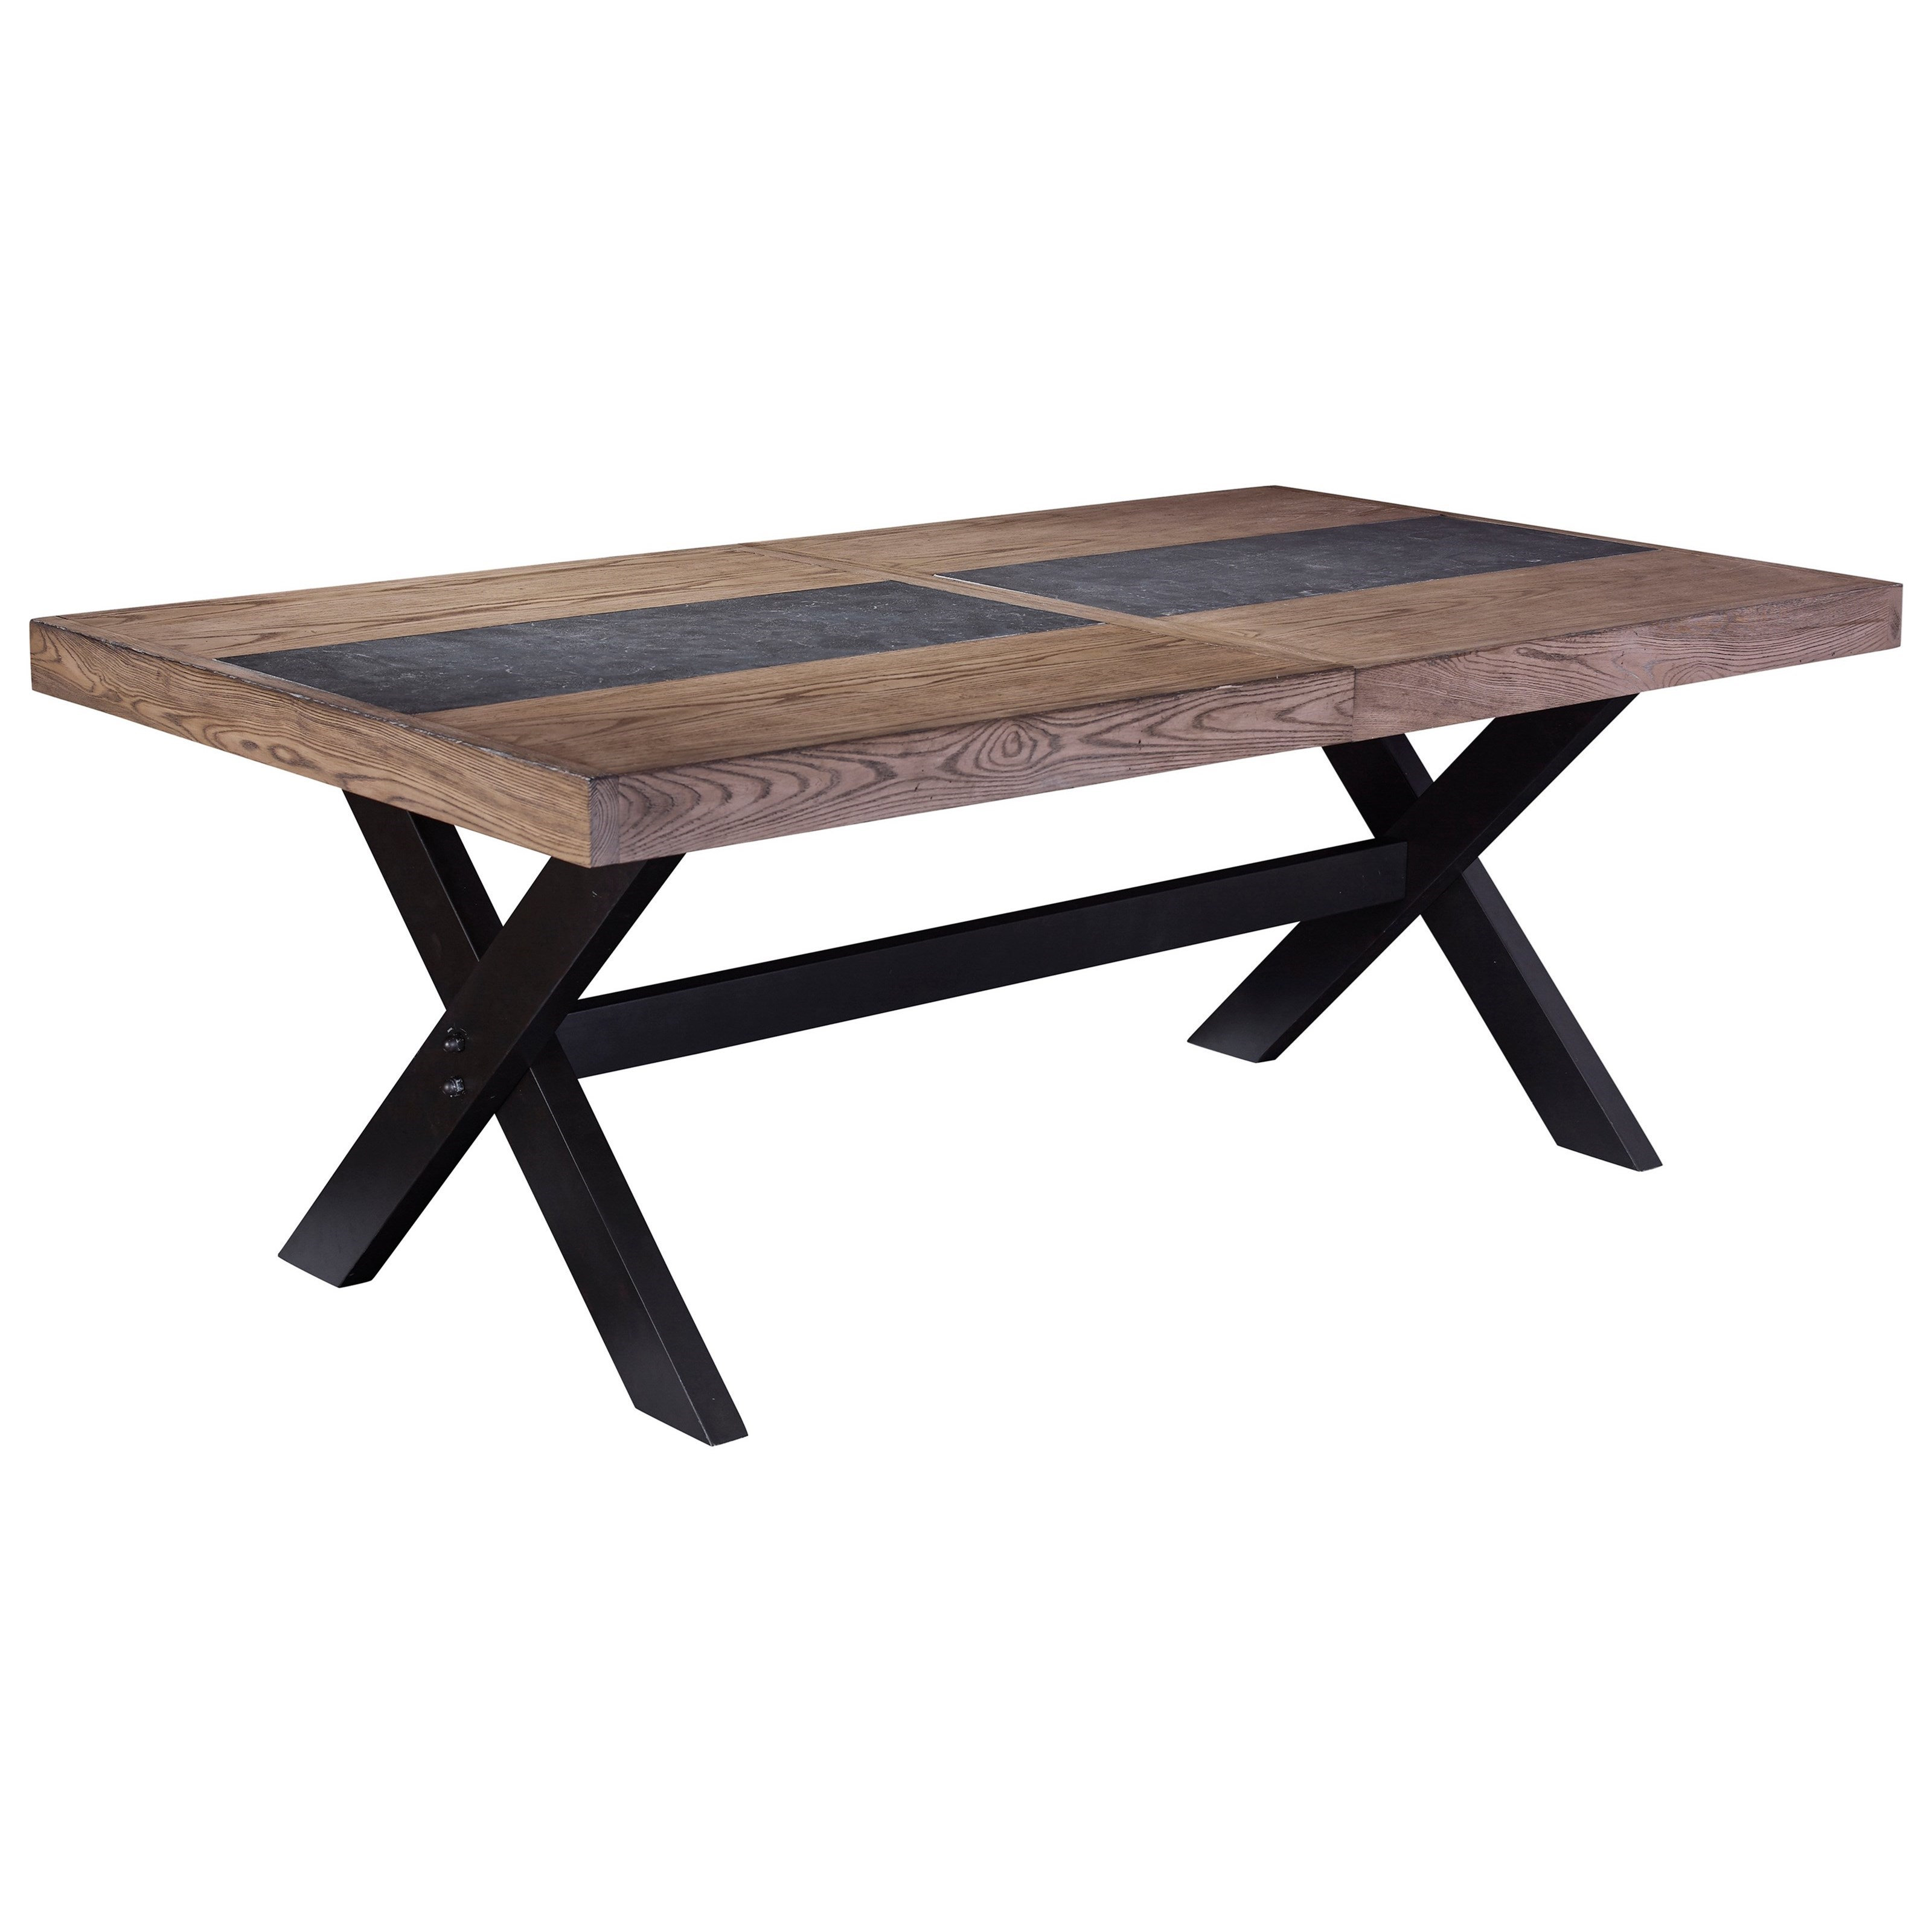 Broyhill Furniture Bedford Avenue Chauncey Street Urban Picnic Table - Item Number: 8615-502